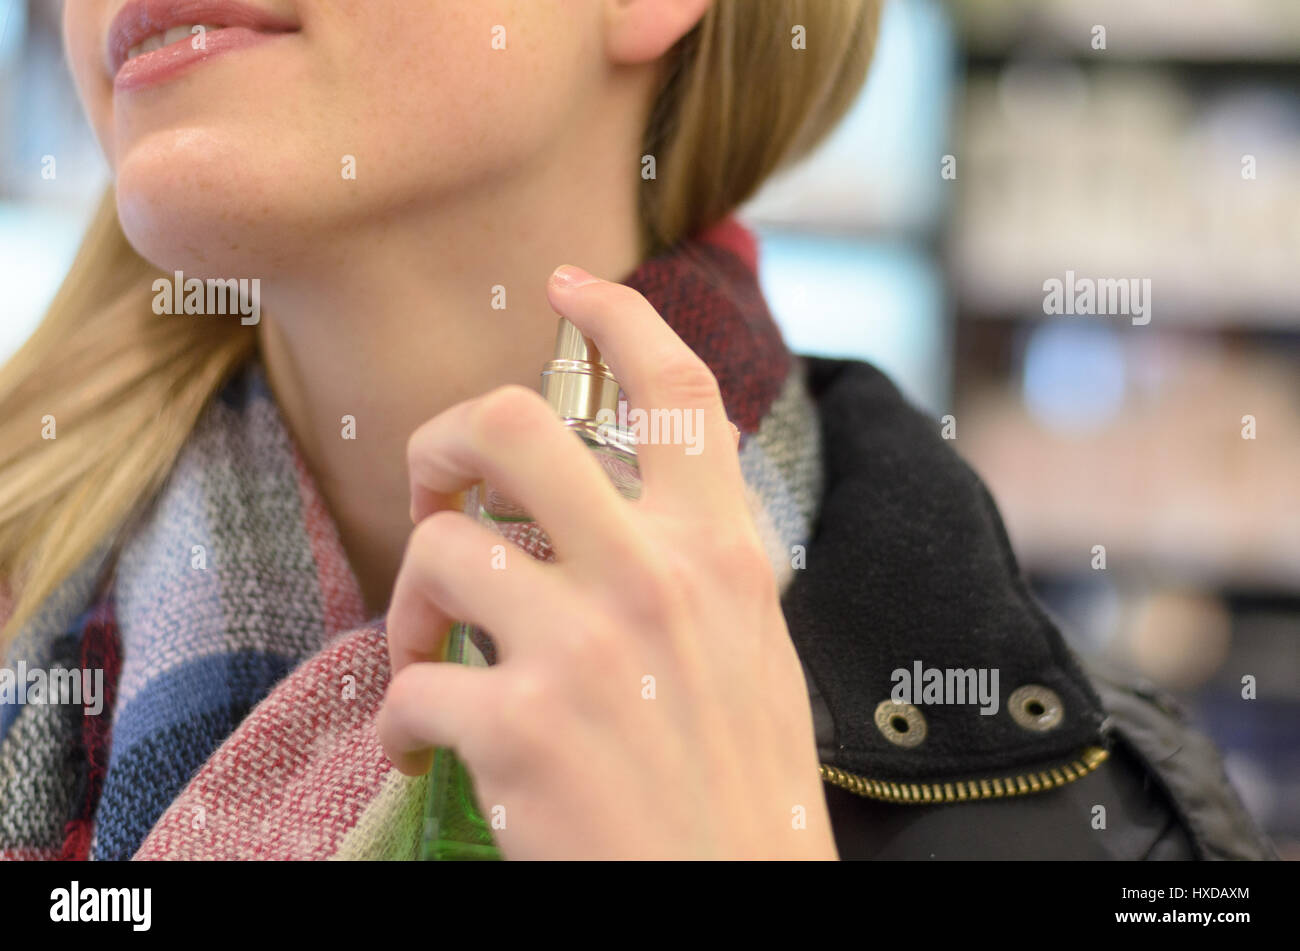 Young woman in a warm woolly knitted winter scarf spraying her neck with perfume in a store as she shops for Christmas Stock Photo